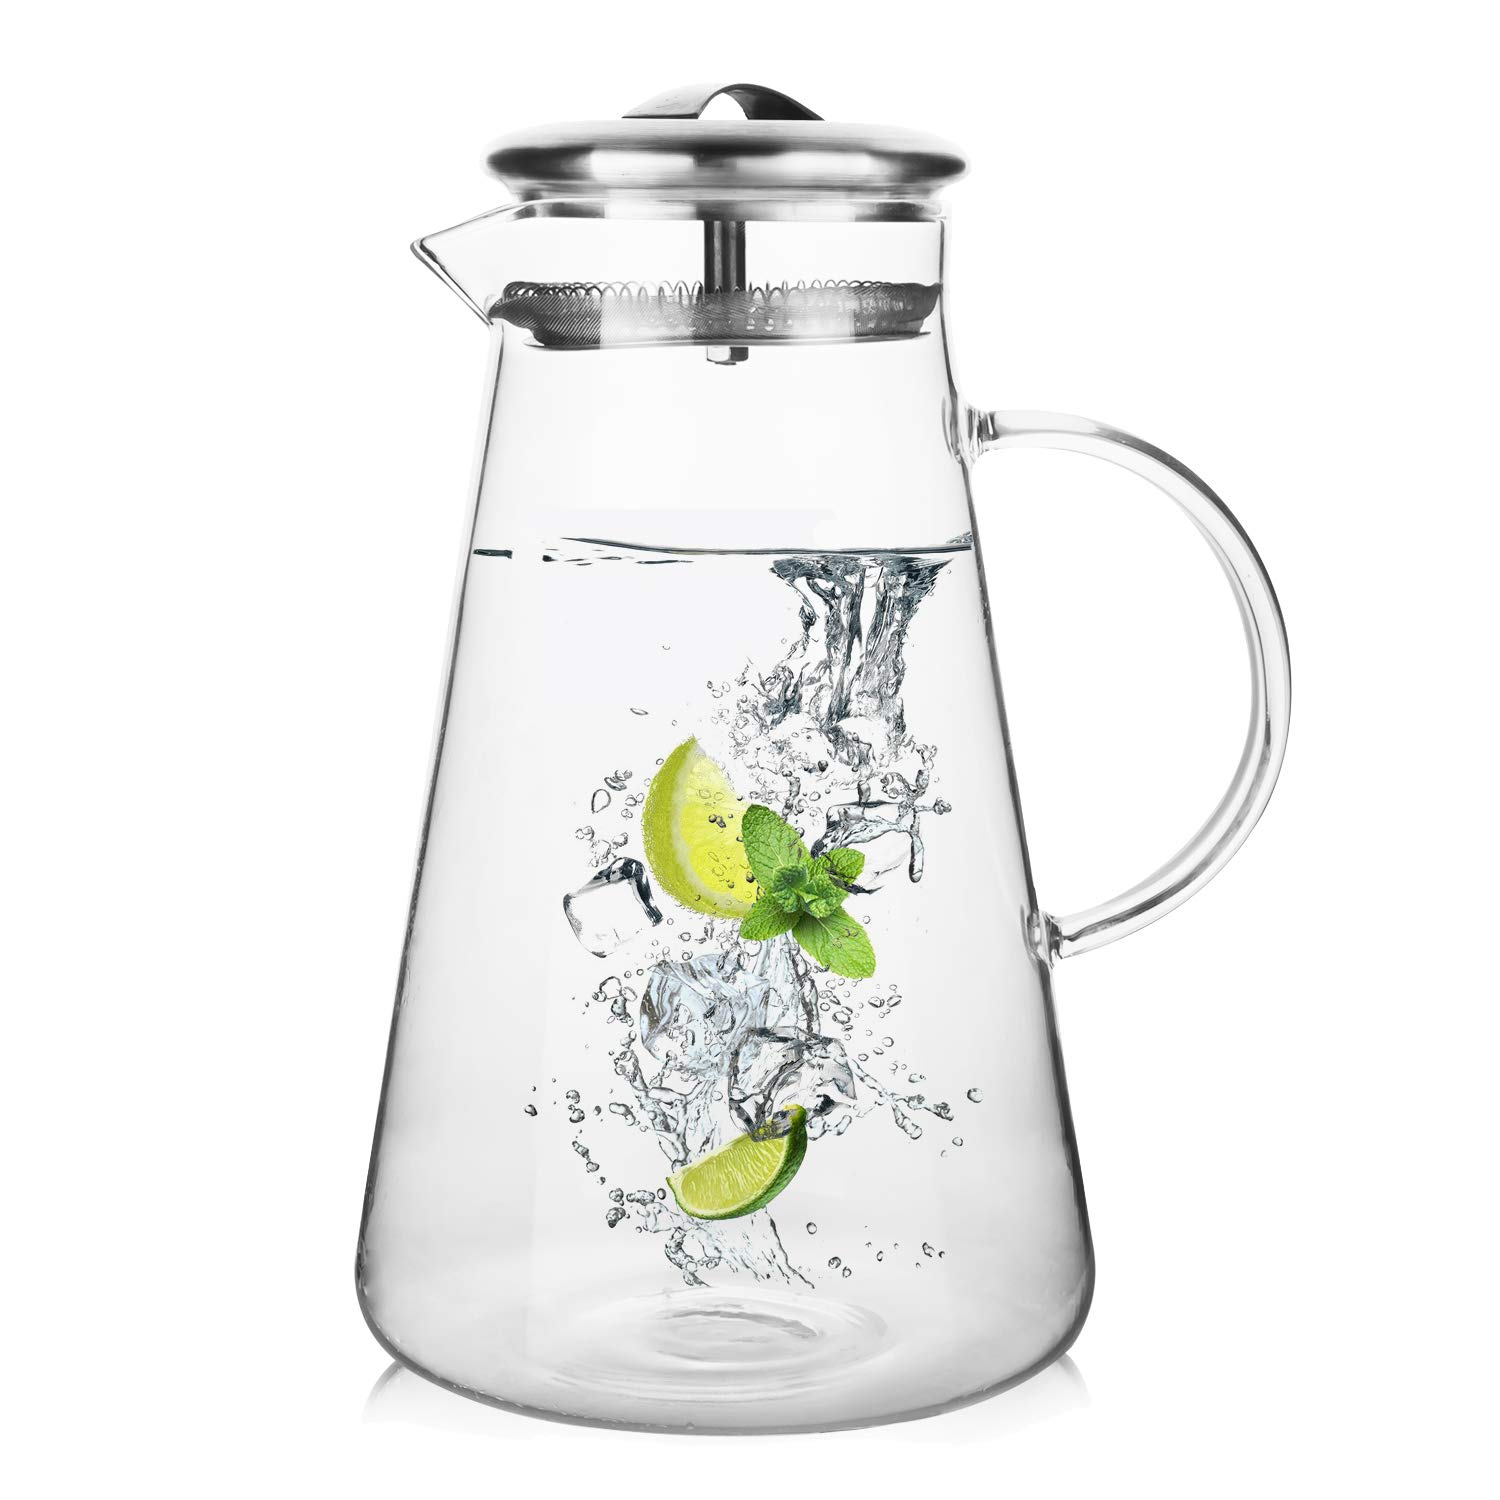 Hiware 68 Ounces Glass Pitcher with Lid and Spout, Heat Resistance Water Carafe for Hot/Cold Water, Refrigerator Pitcher for Homemade Iced Tea & Juice